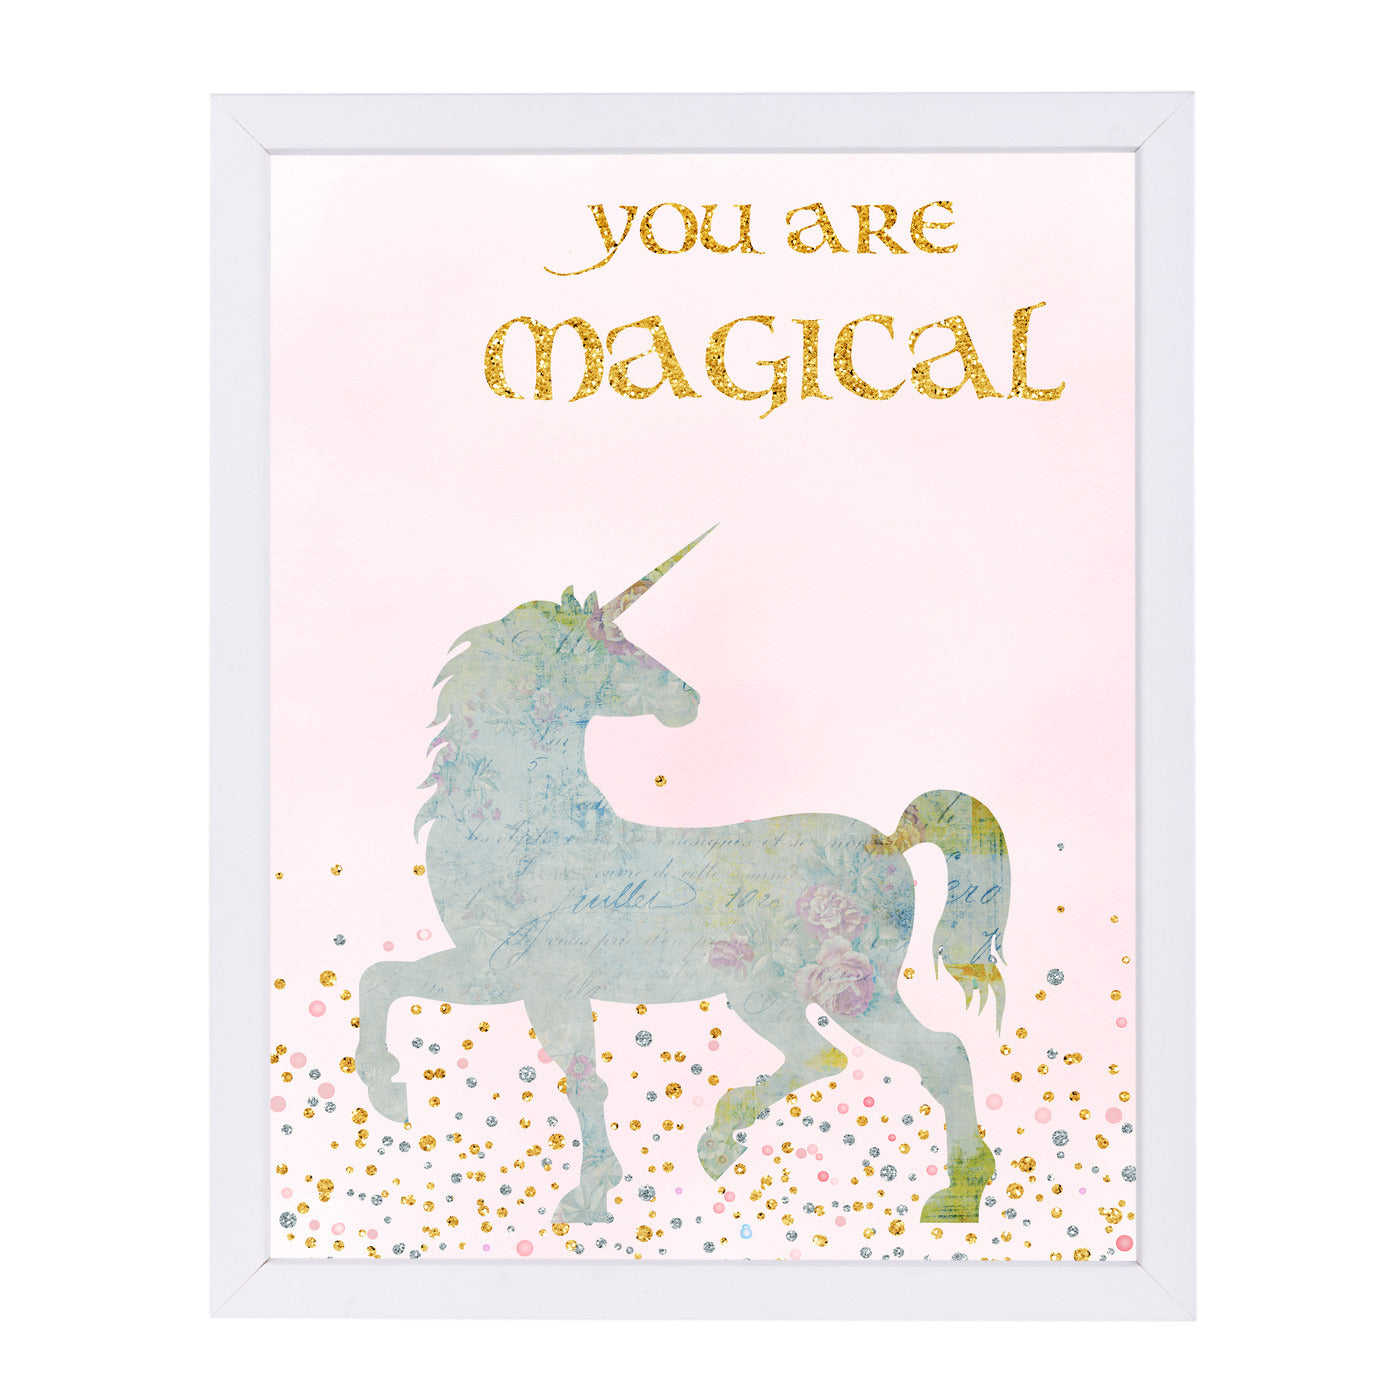 You Are Magical 2 by Peach & Gold Framed Print - Americanflat